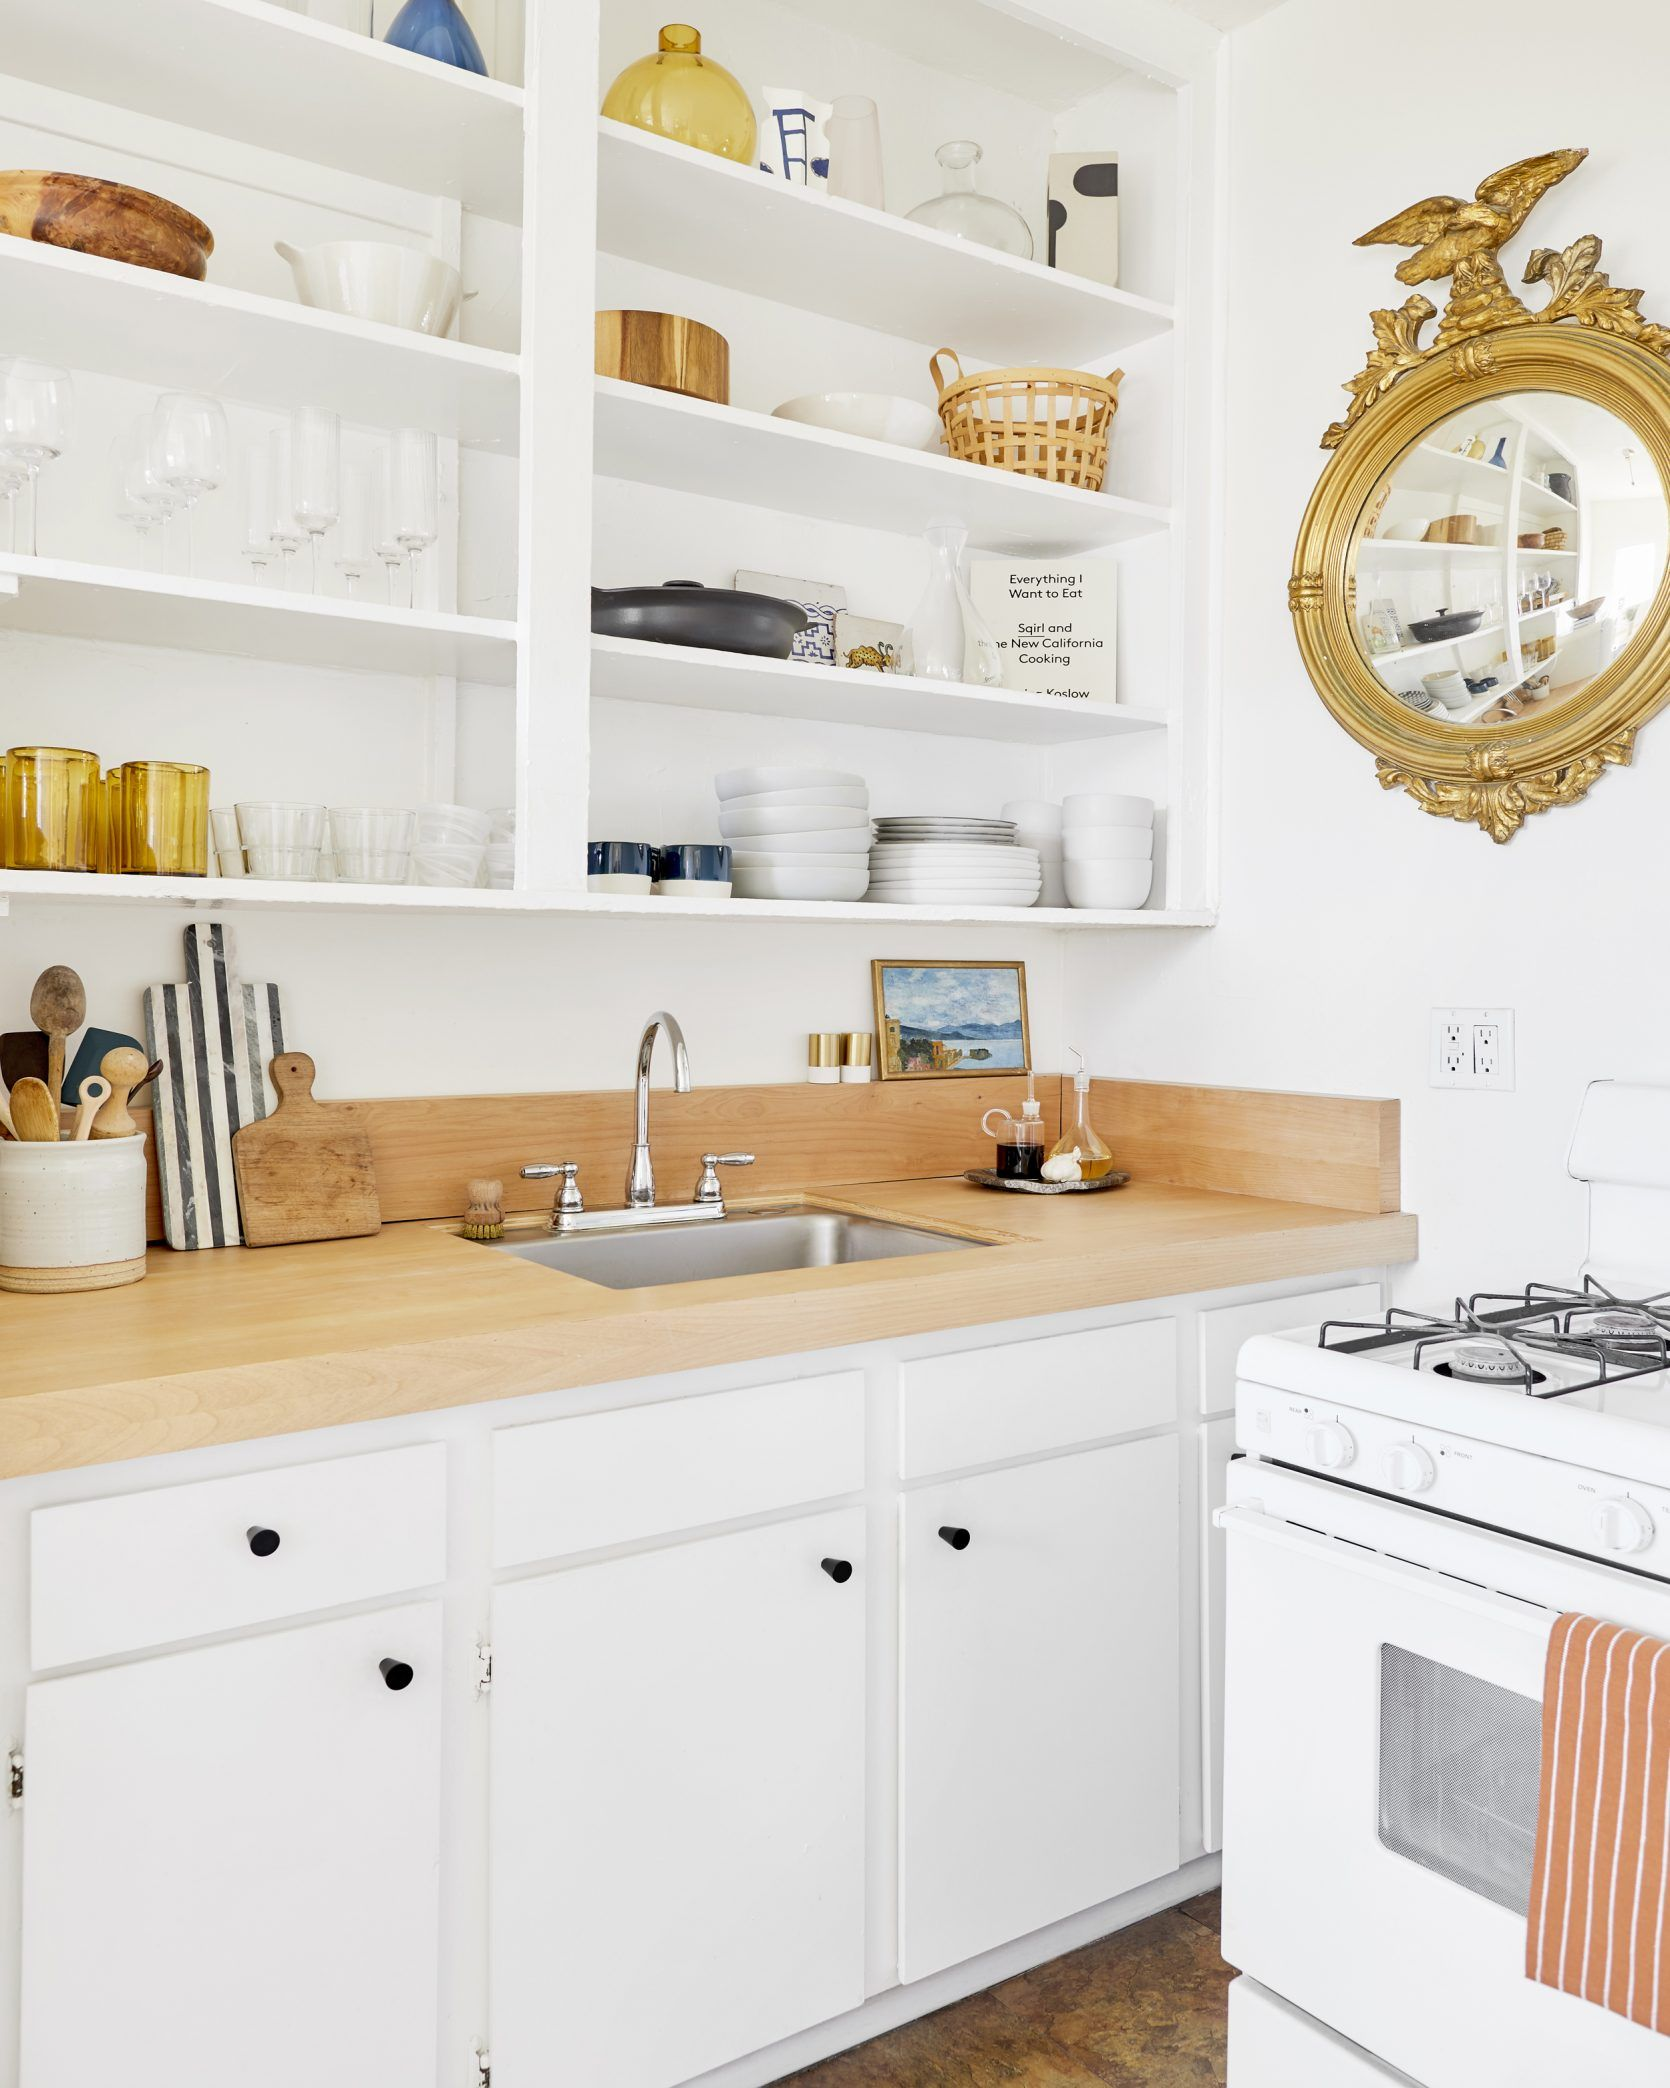 A Super Stylish Small Rental Kitchen With Diys You Ll Want To Try For Yourself Kitchen Cabinet Organization Layout Kitchen Cabinet Storage Rental Kitchen